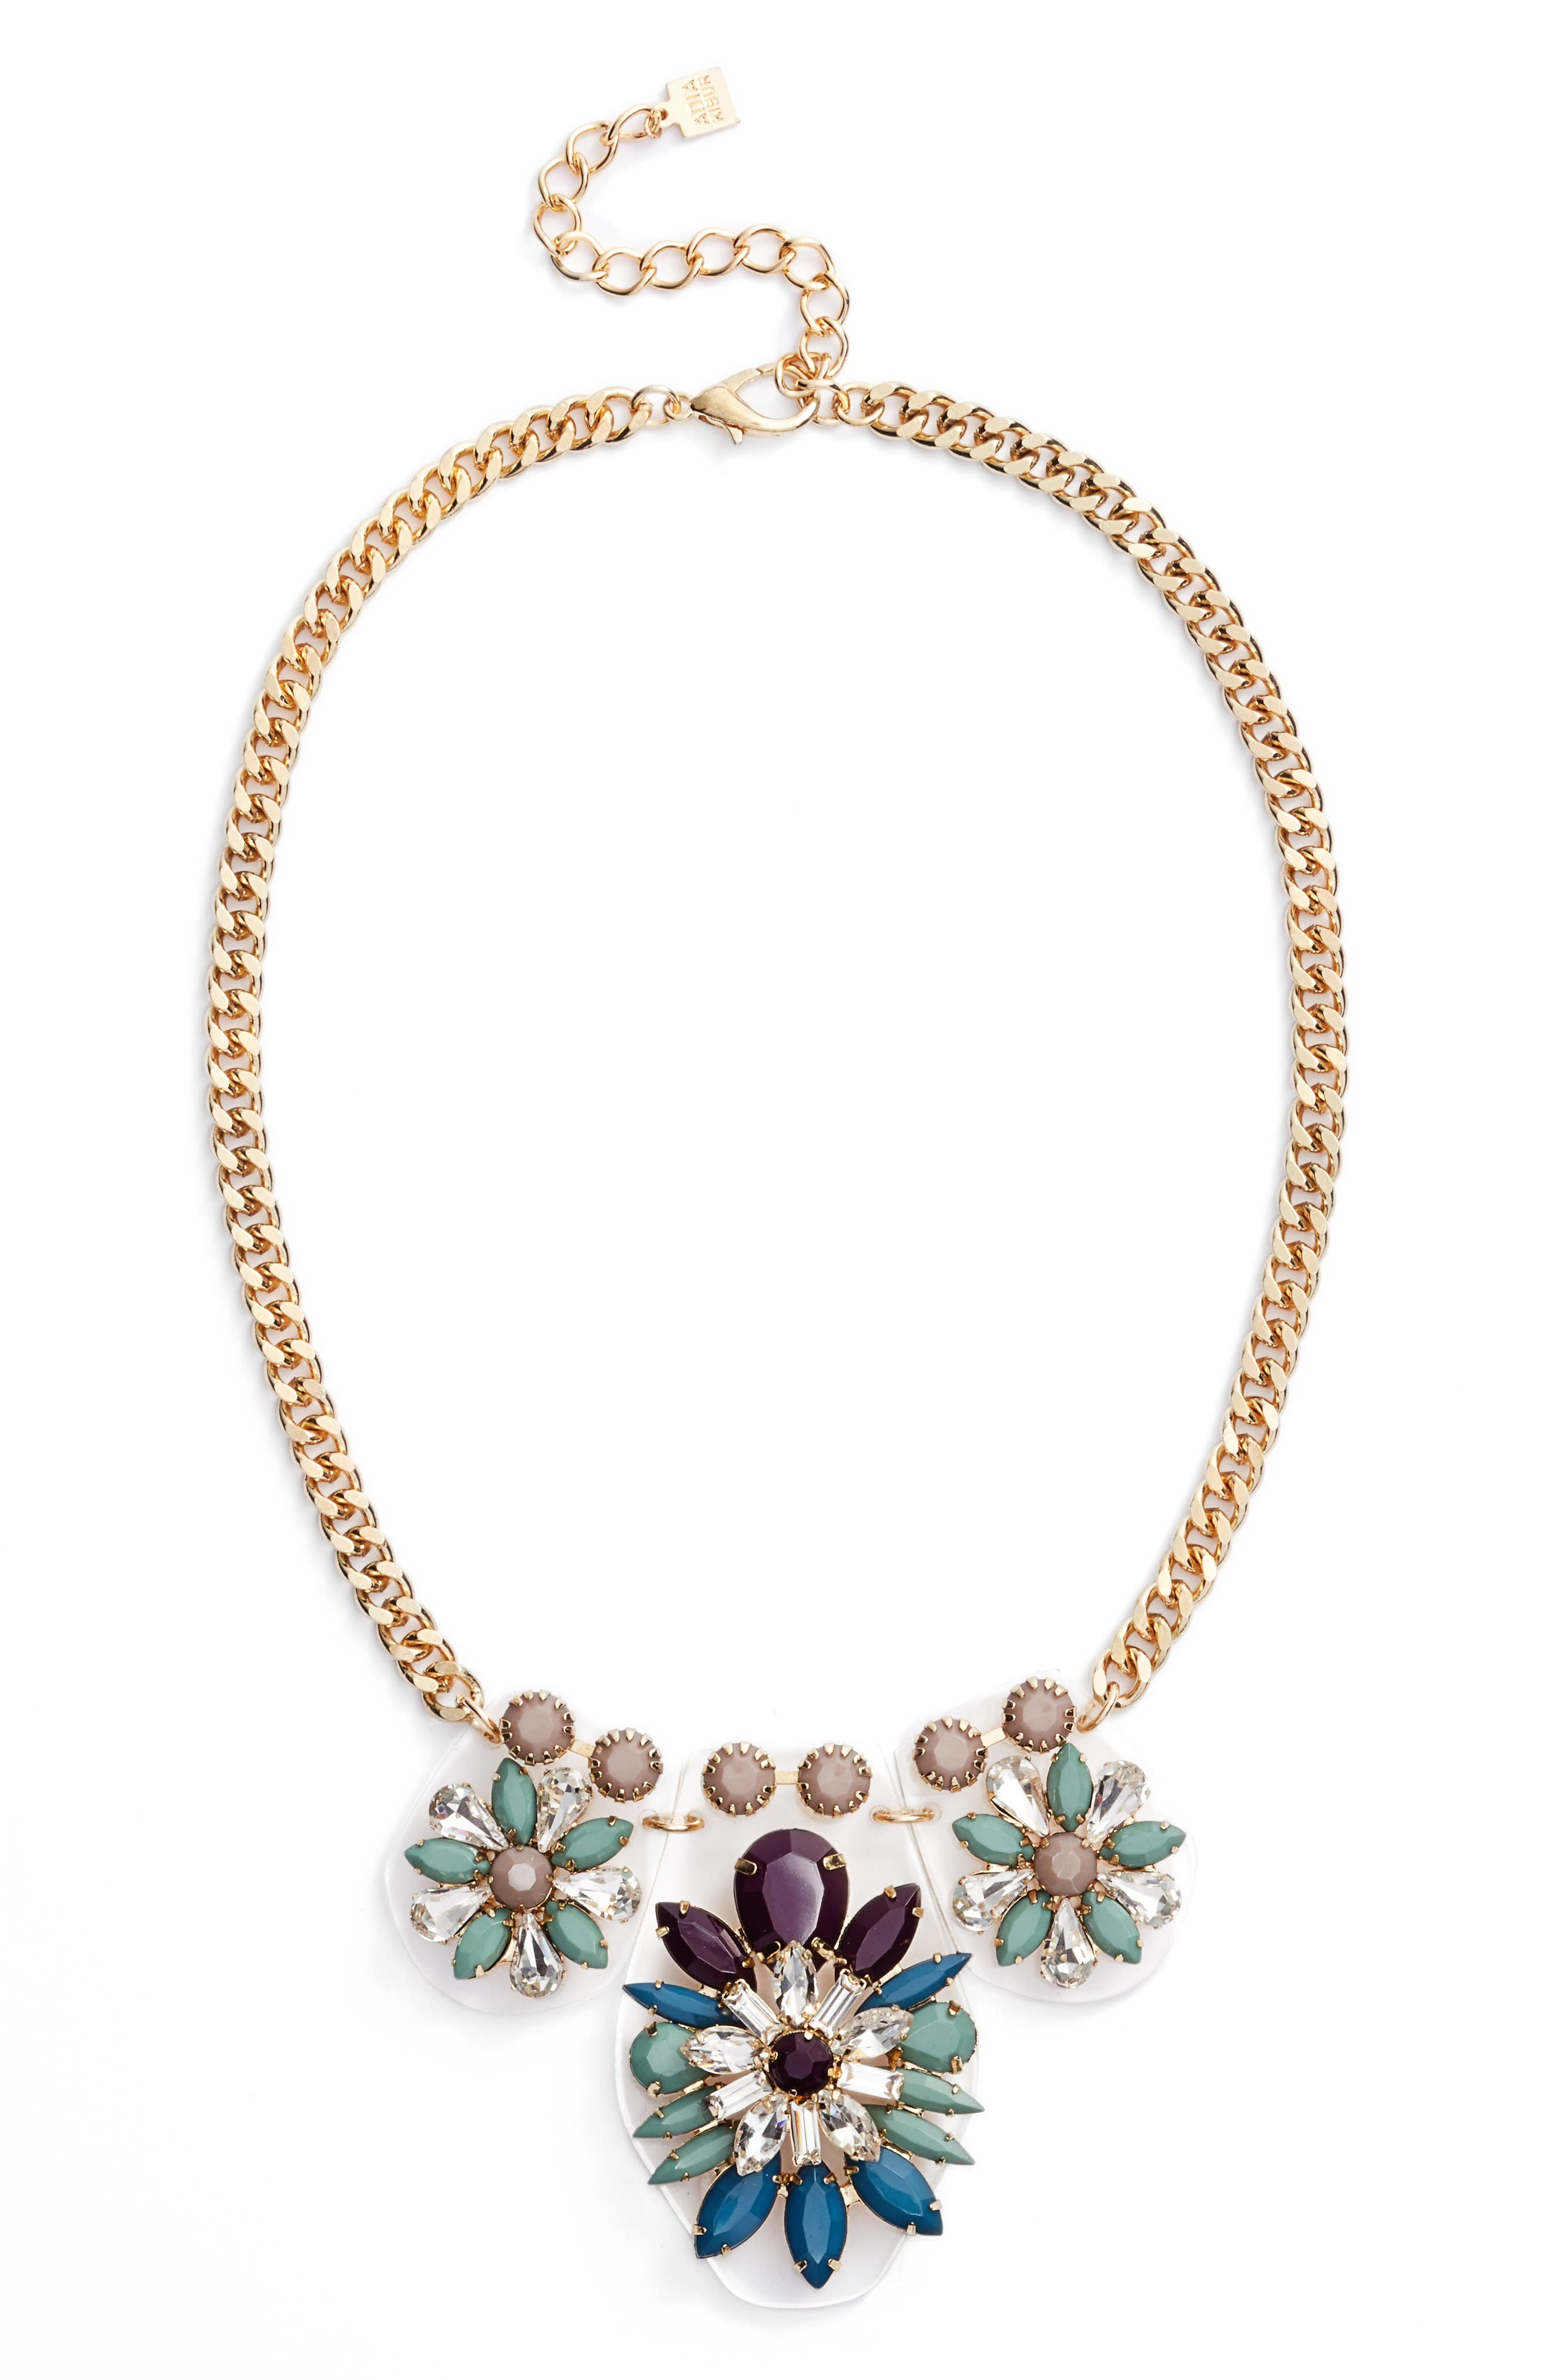 Cluster Statement Necklace,                             Main thumbnail 1, color,                             430